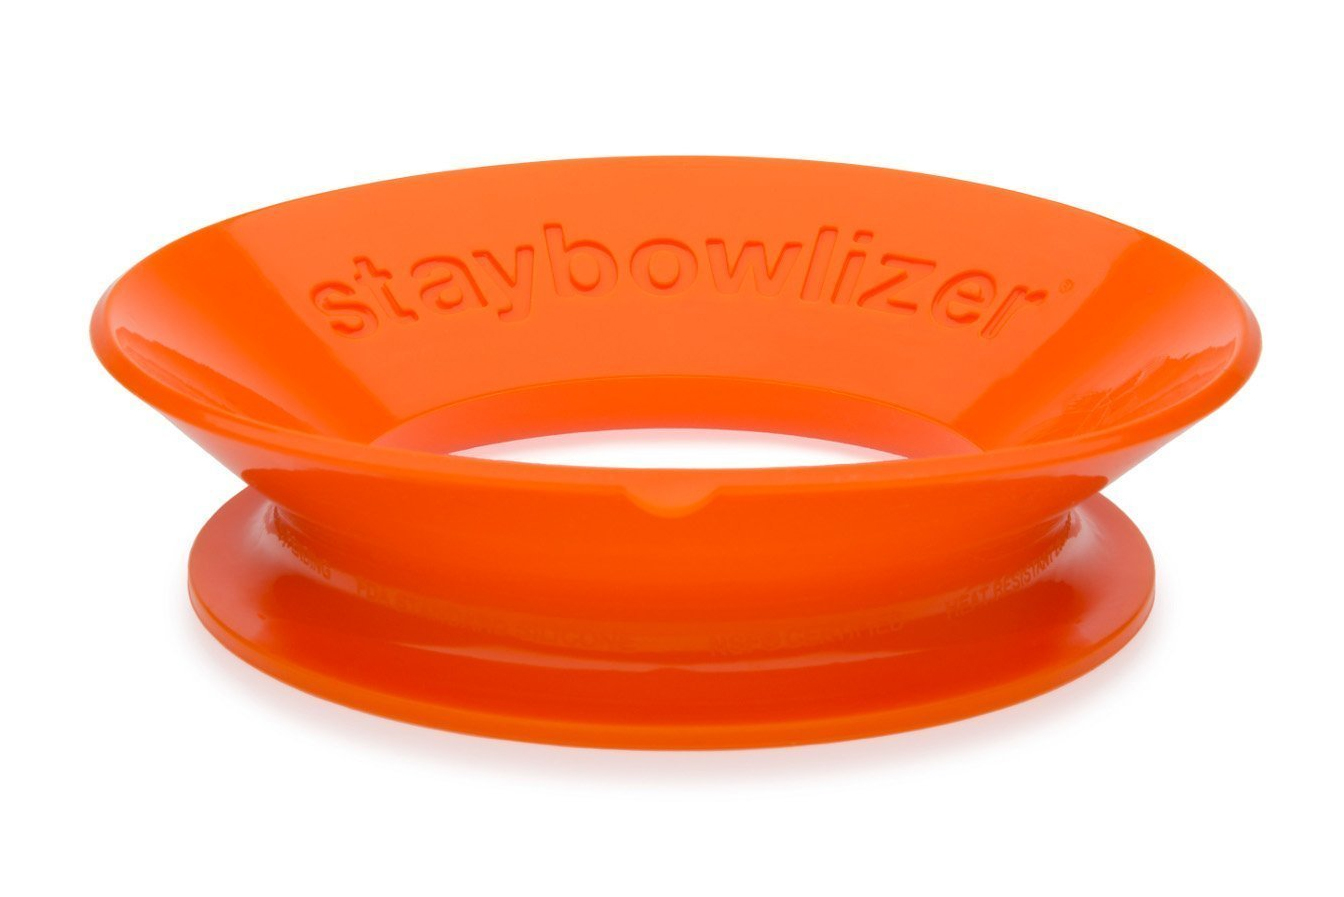 The Staybowlizer adds a splash of color (available in more than just orange) in the kitchen and can be used for a variety of tasks.